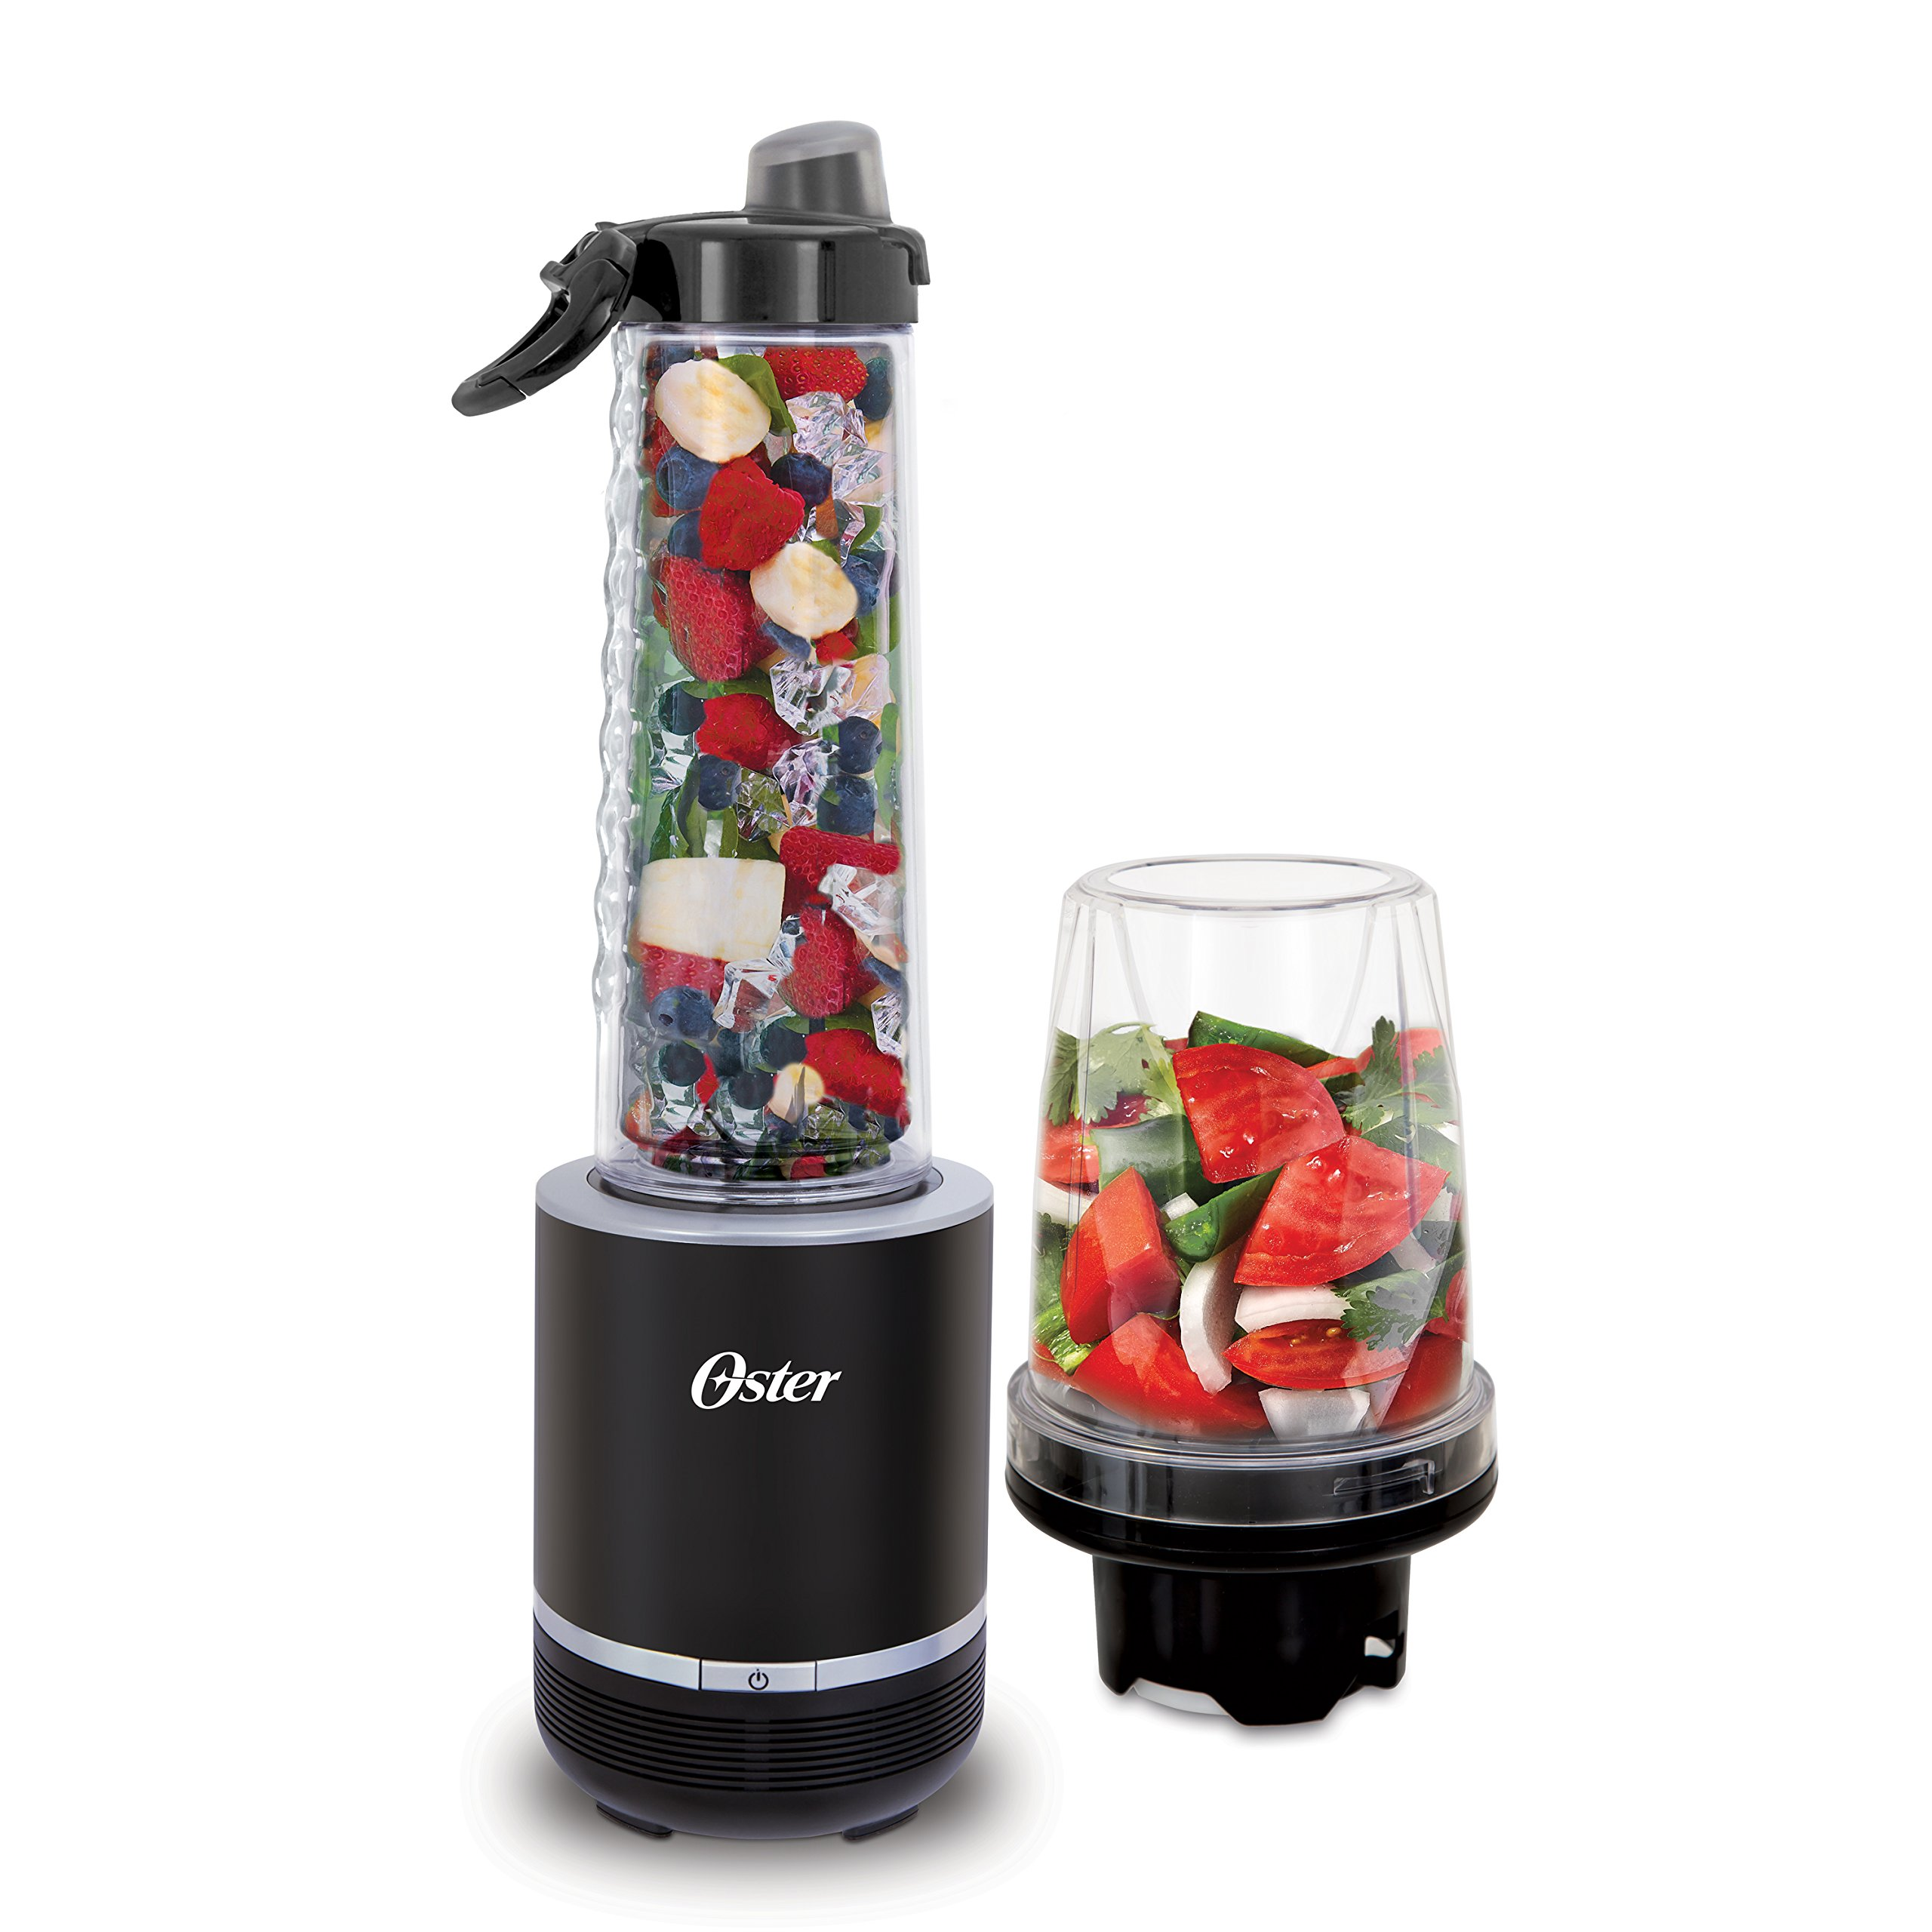 Oster Blend Active 2-in-1 Personal Blender with Food Chopper, Black